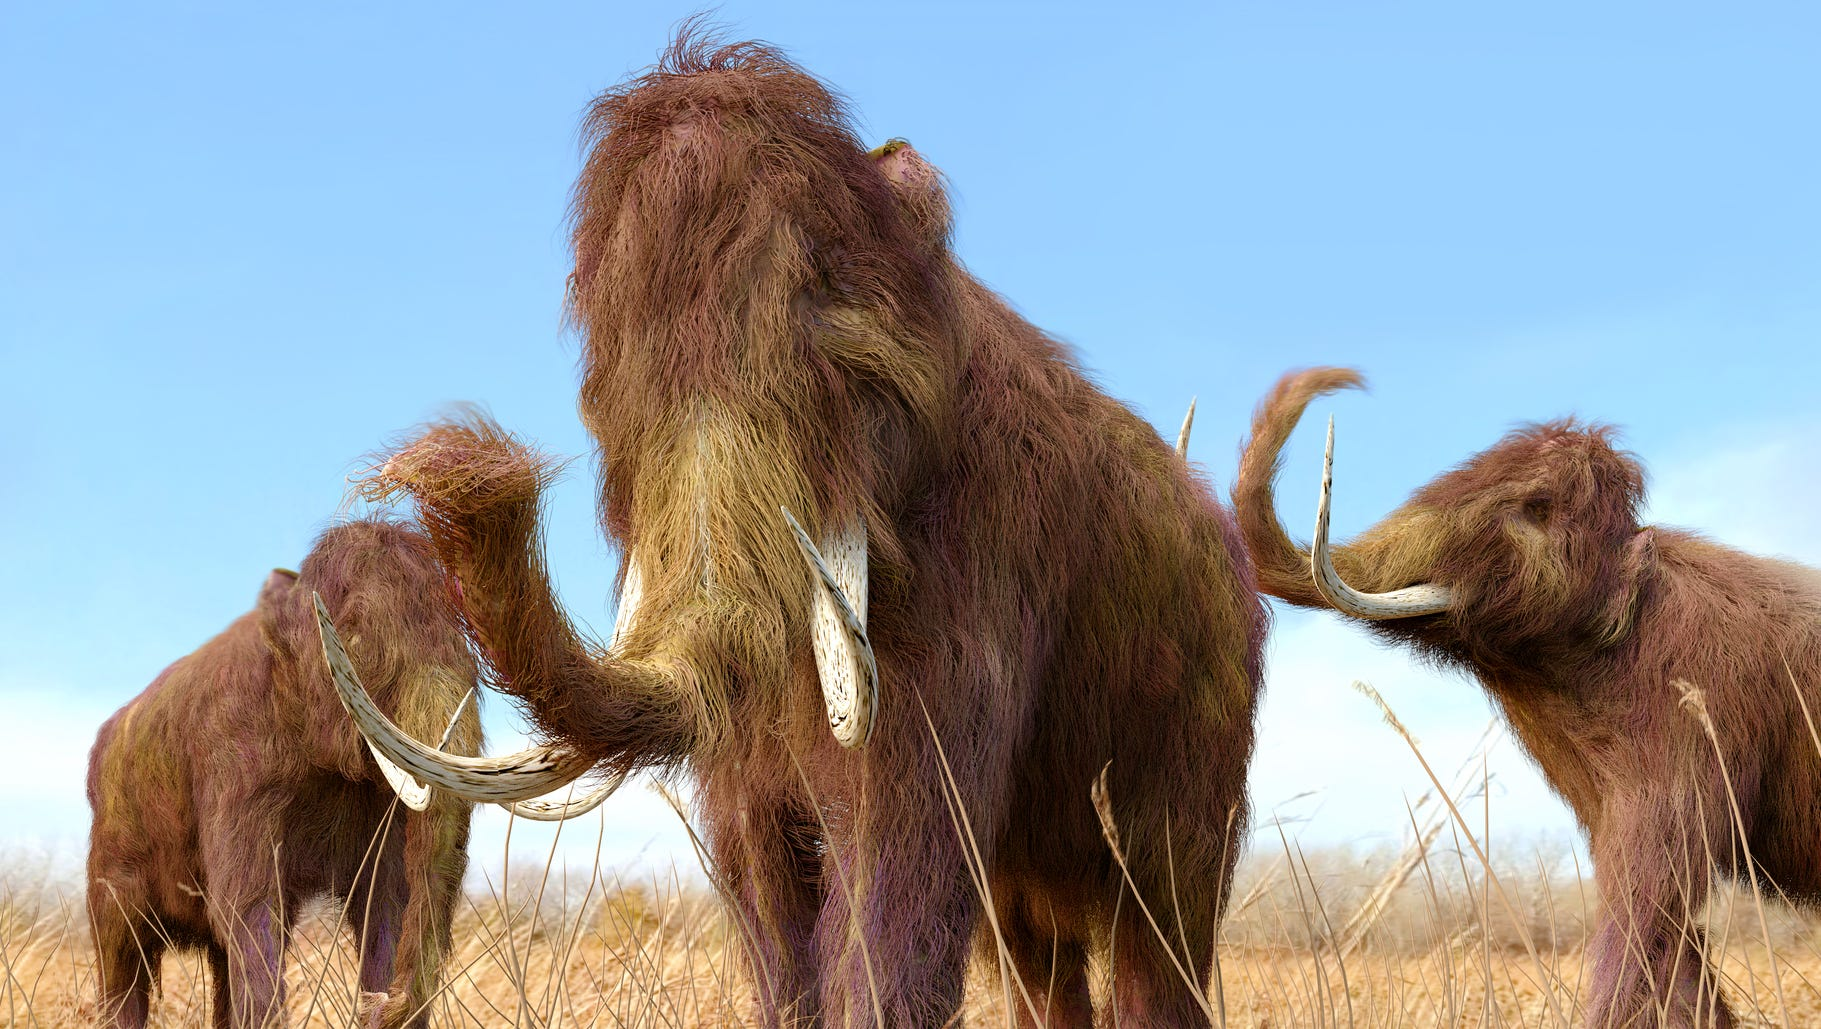 Woolly mammoth may return to Arctic after company edits elephant DNA